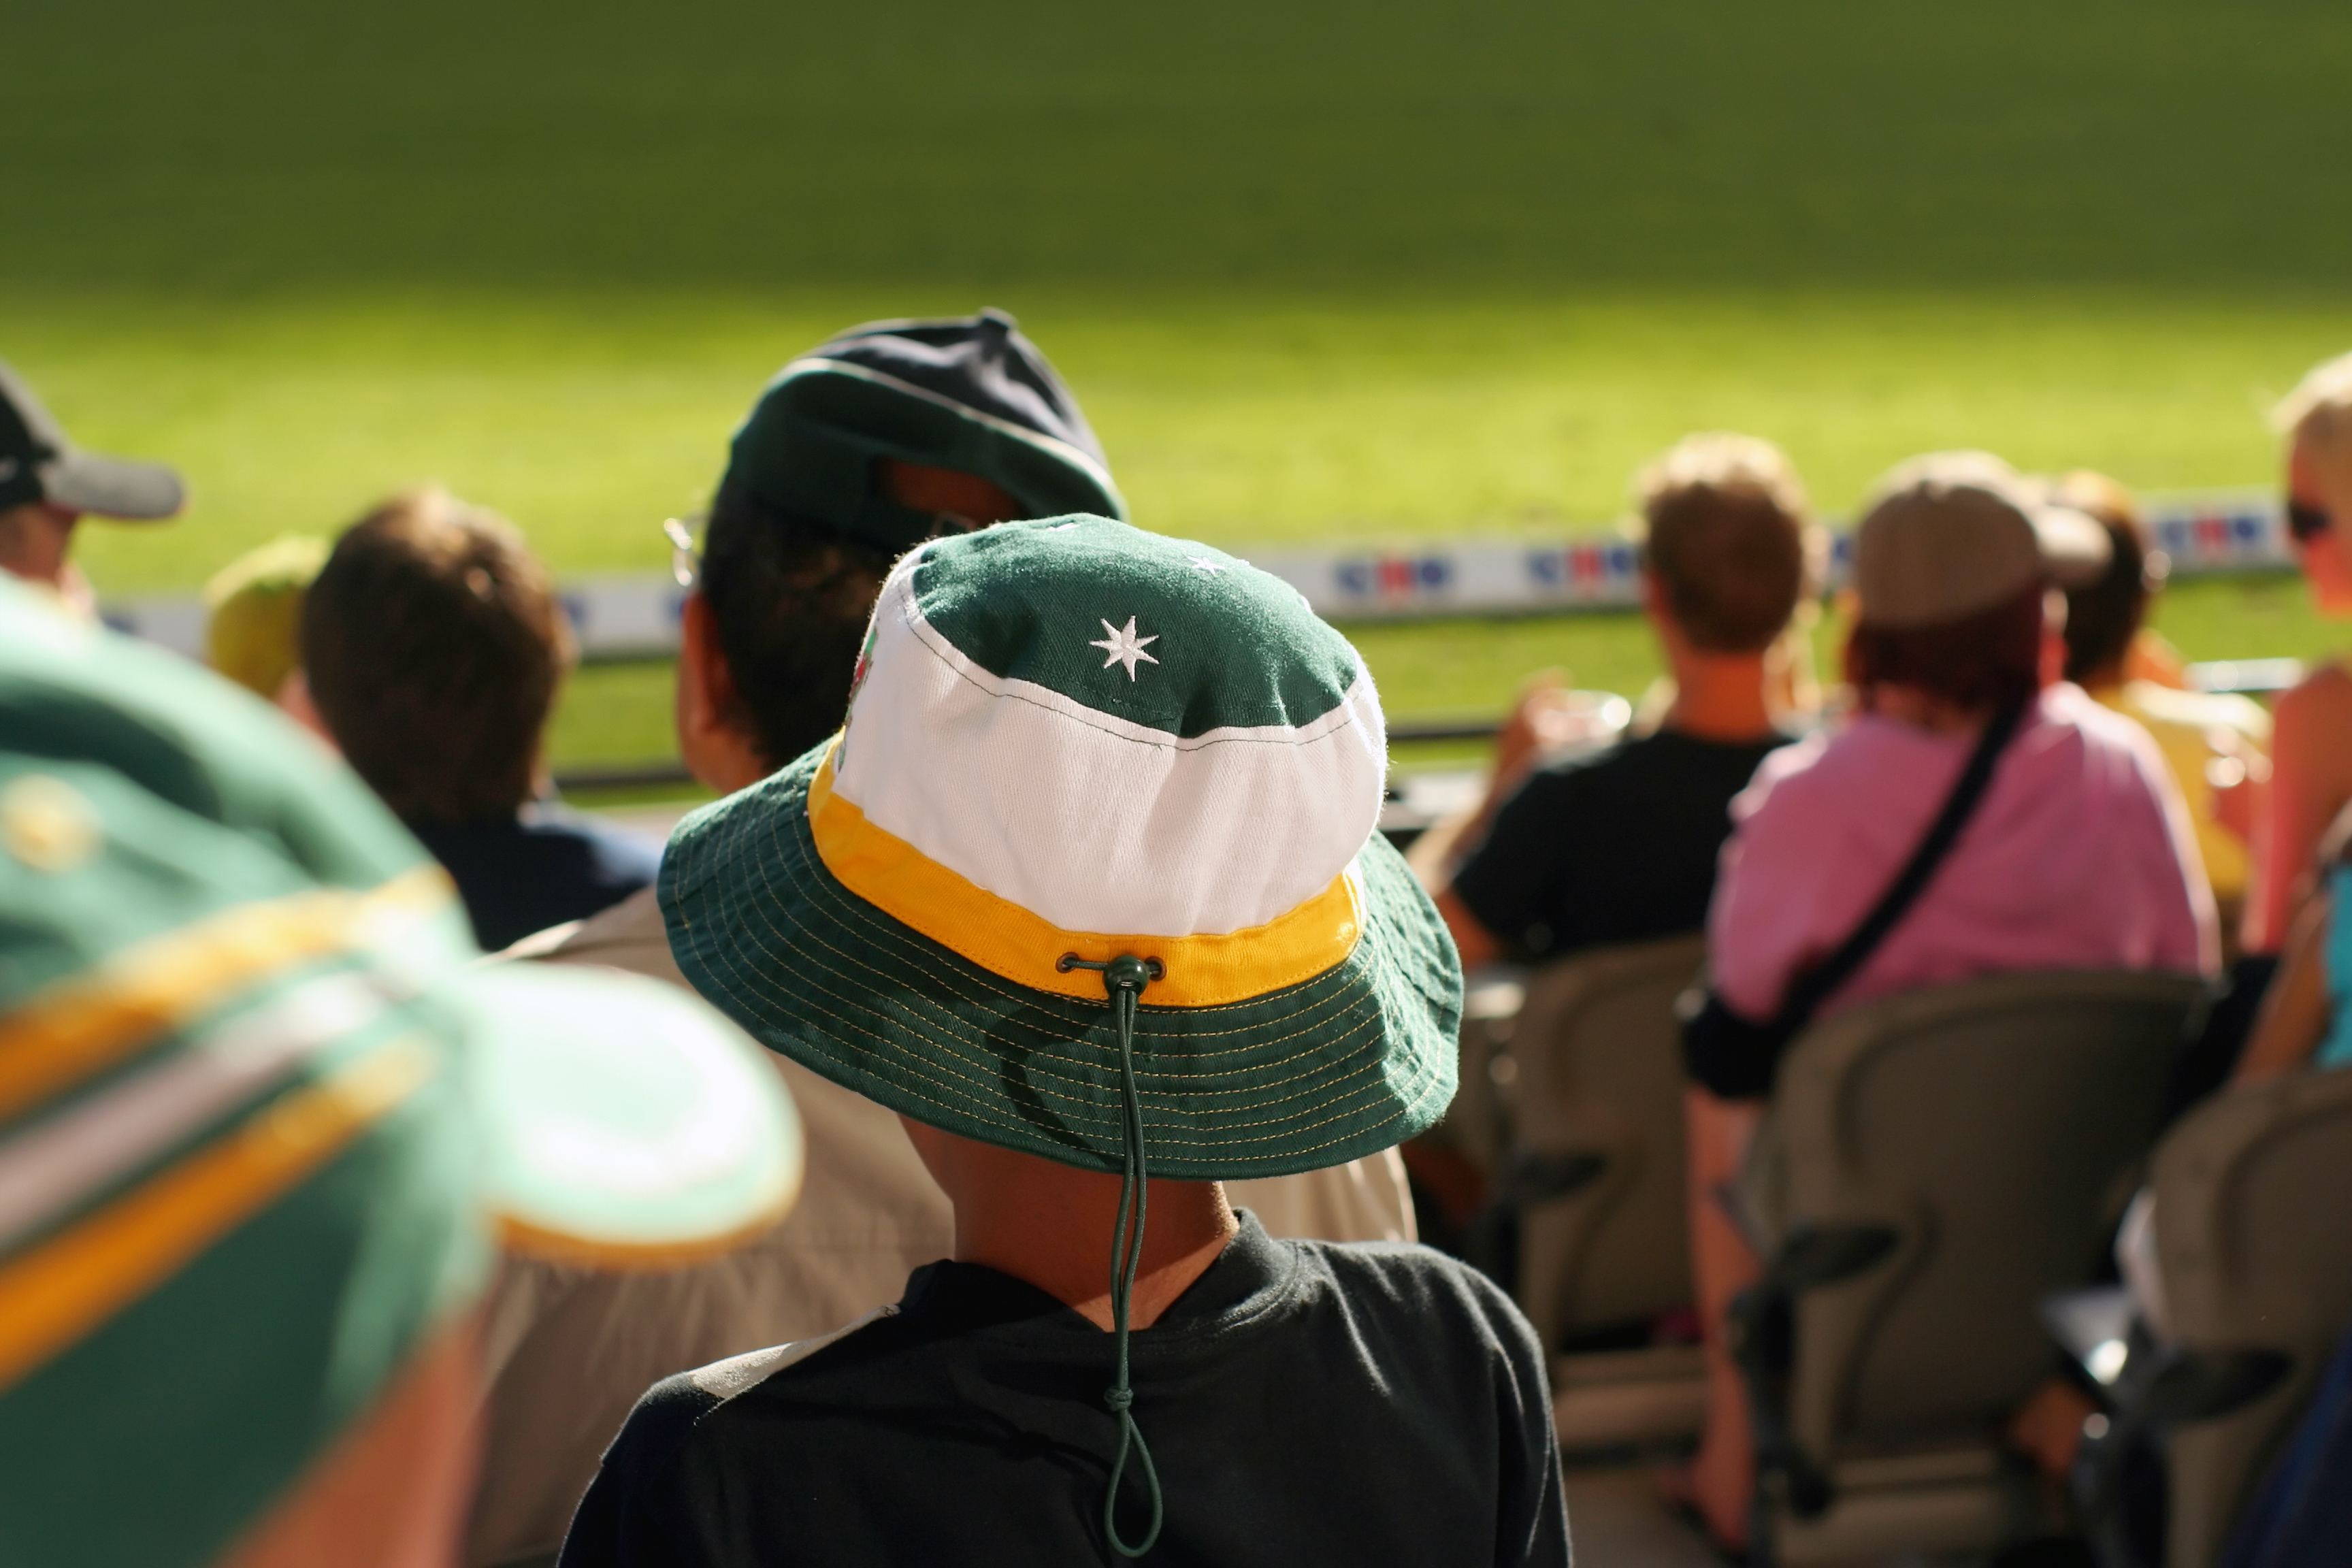 a young boy watches his team at a sports arena. Actually an Aussie cricket supporter watching Australia play an international match, but could be anywhere.